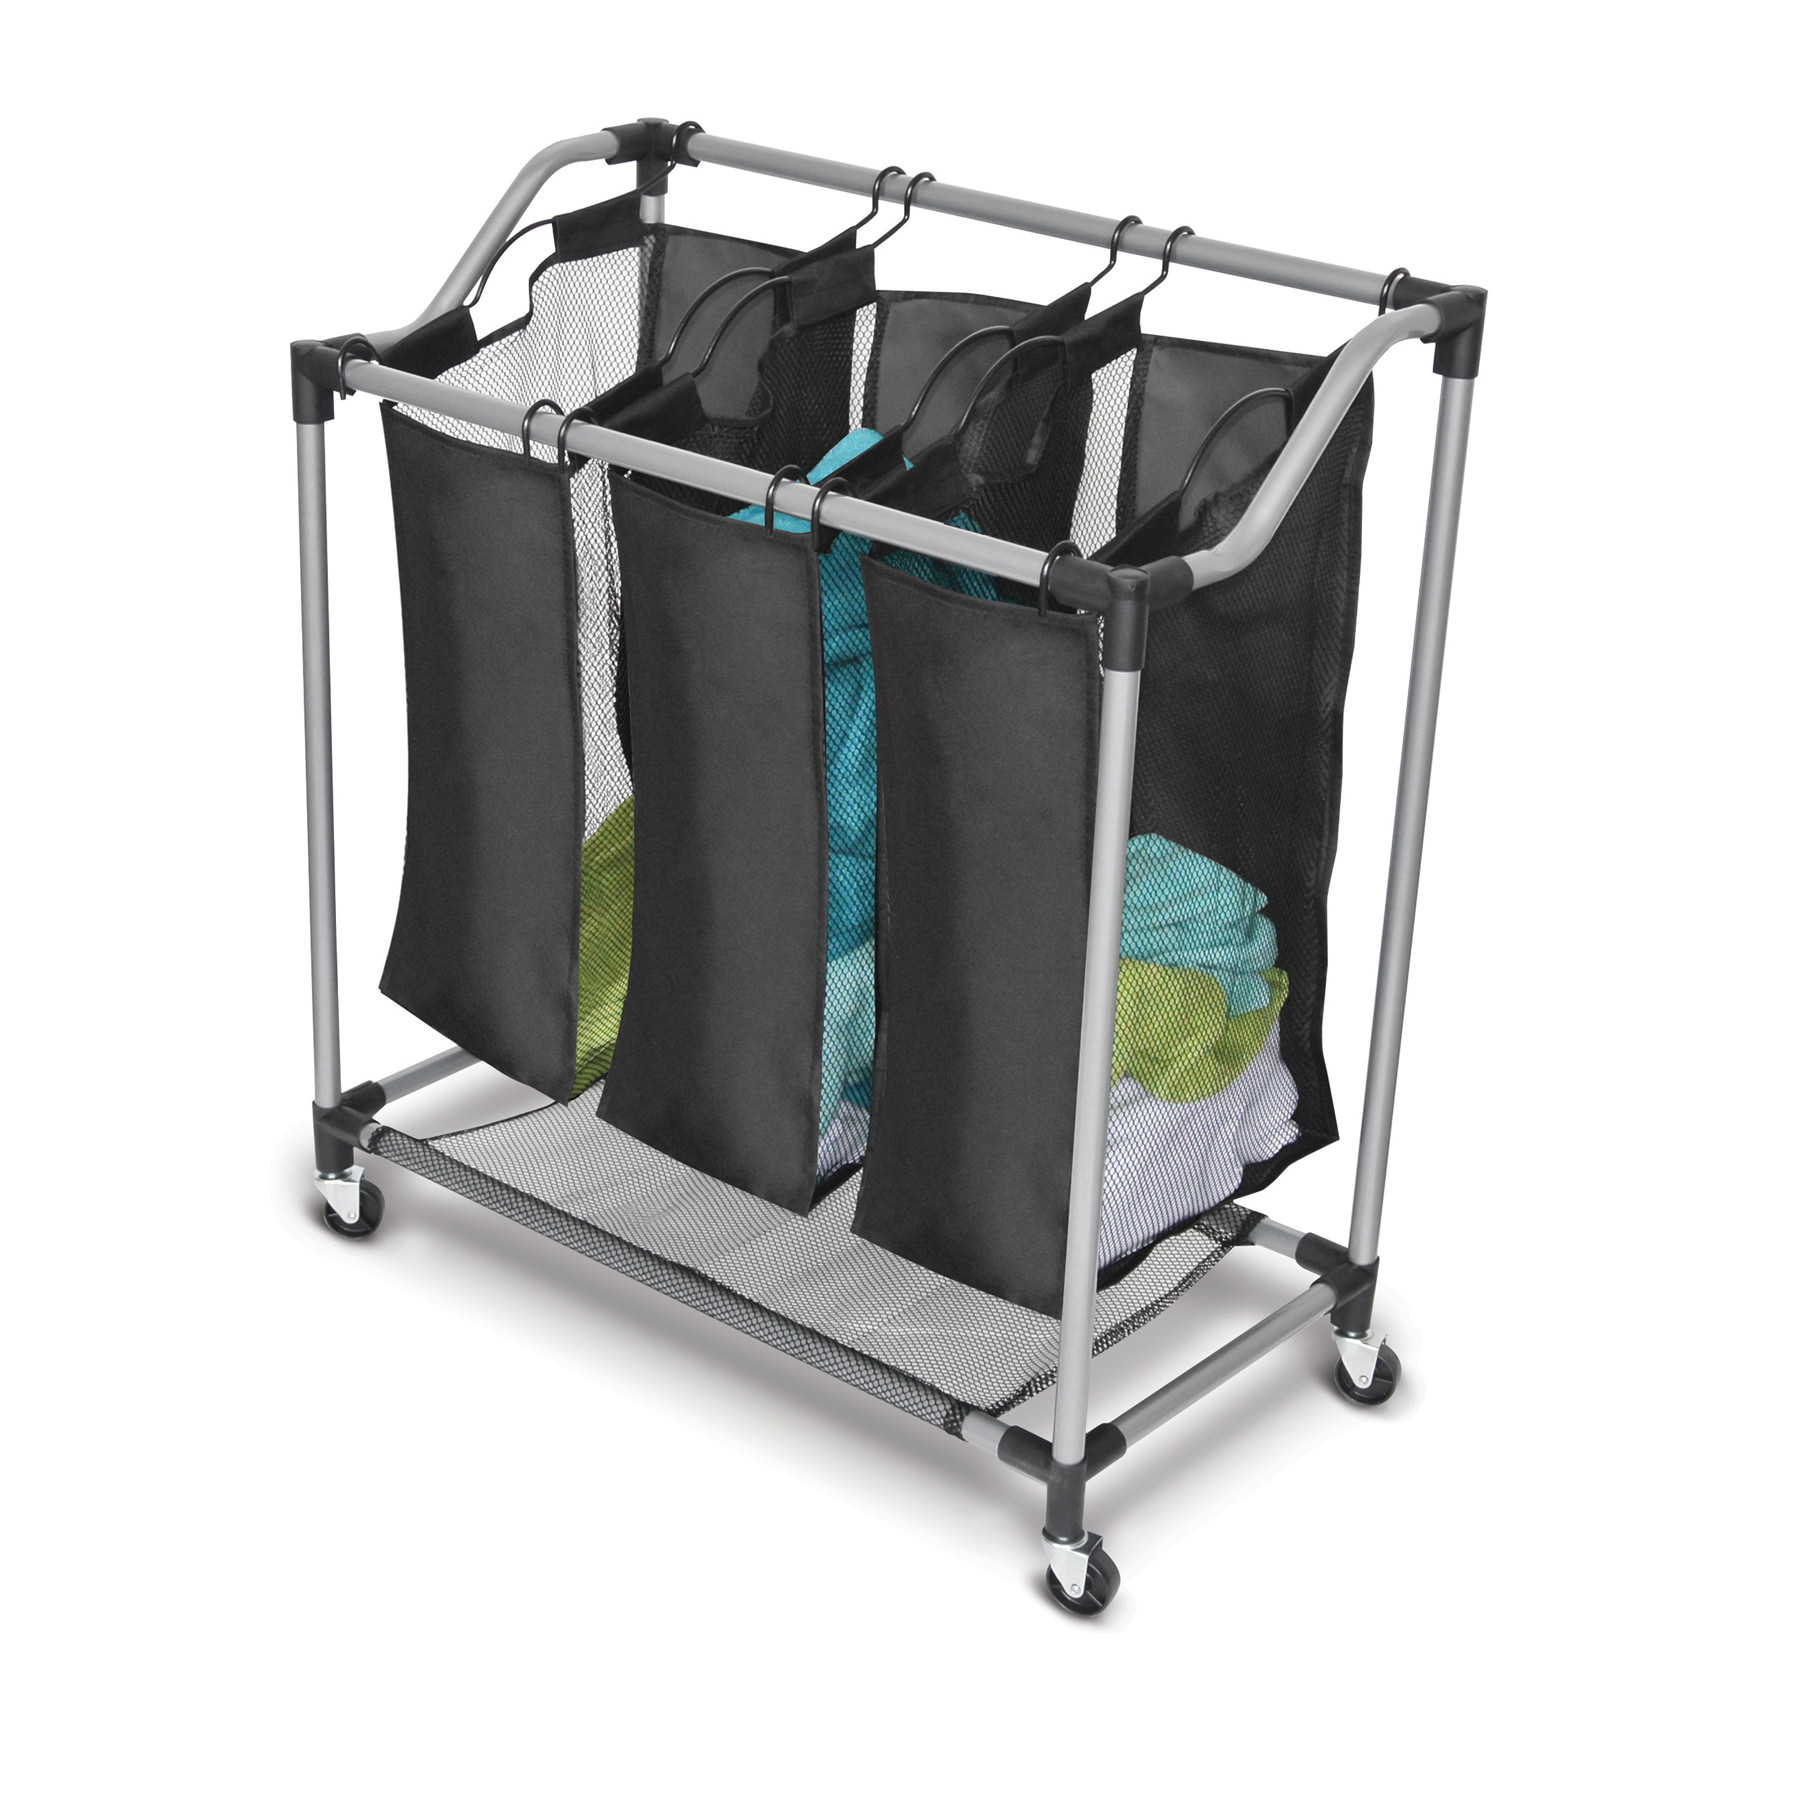 Homz Black Mesh Triple Sorter, with Casters, Set of 1